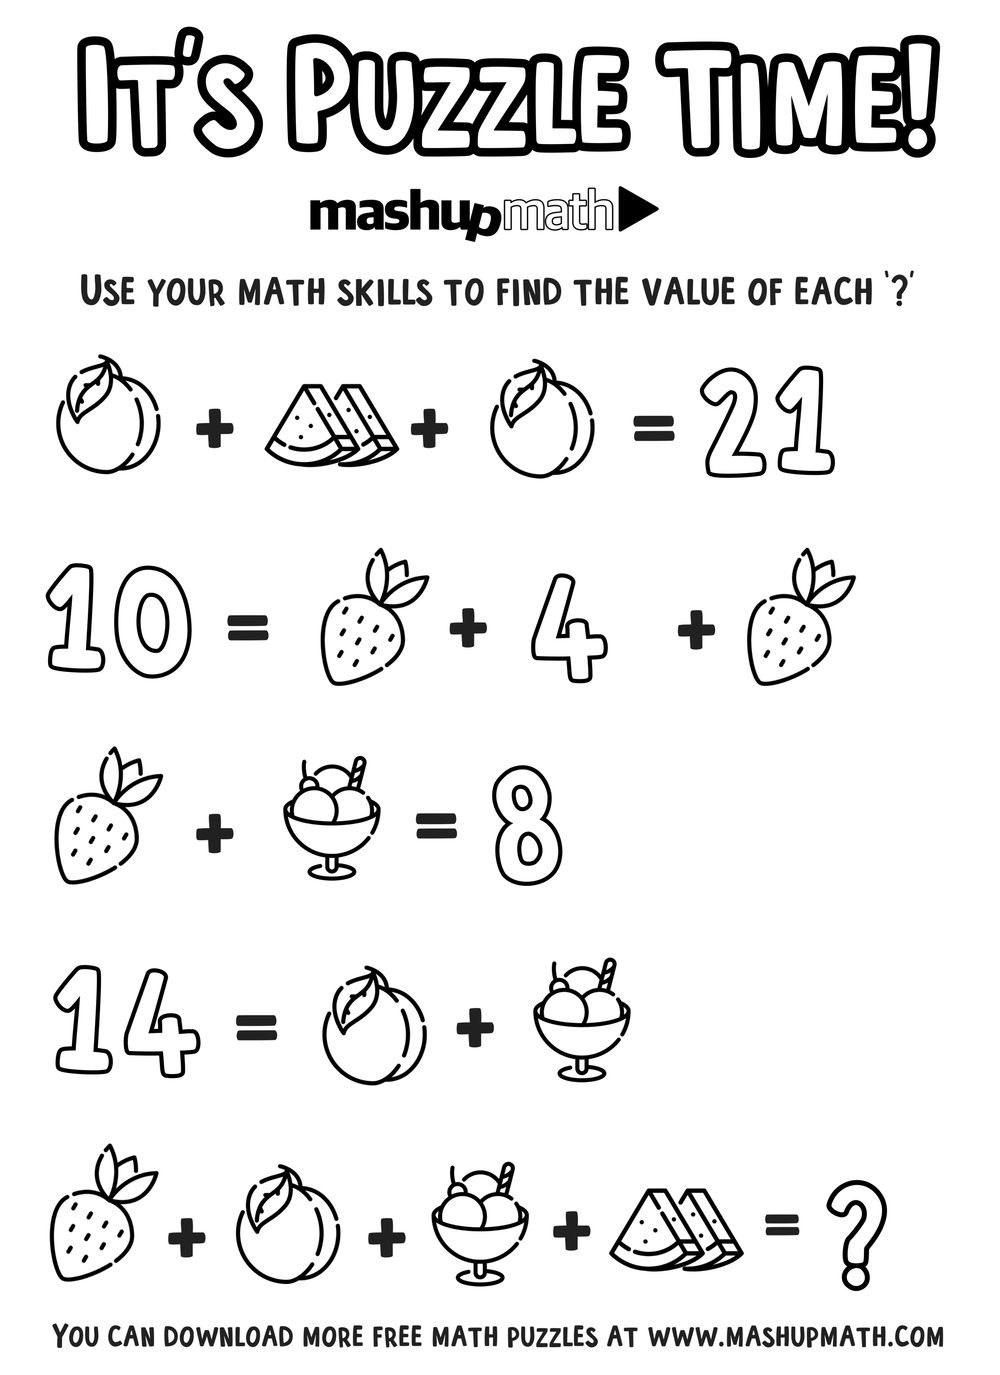 6th Grade Math Puzzle Worksheets Free Math Coloring Worksheets for 5th and 6th Grade — Mashup